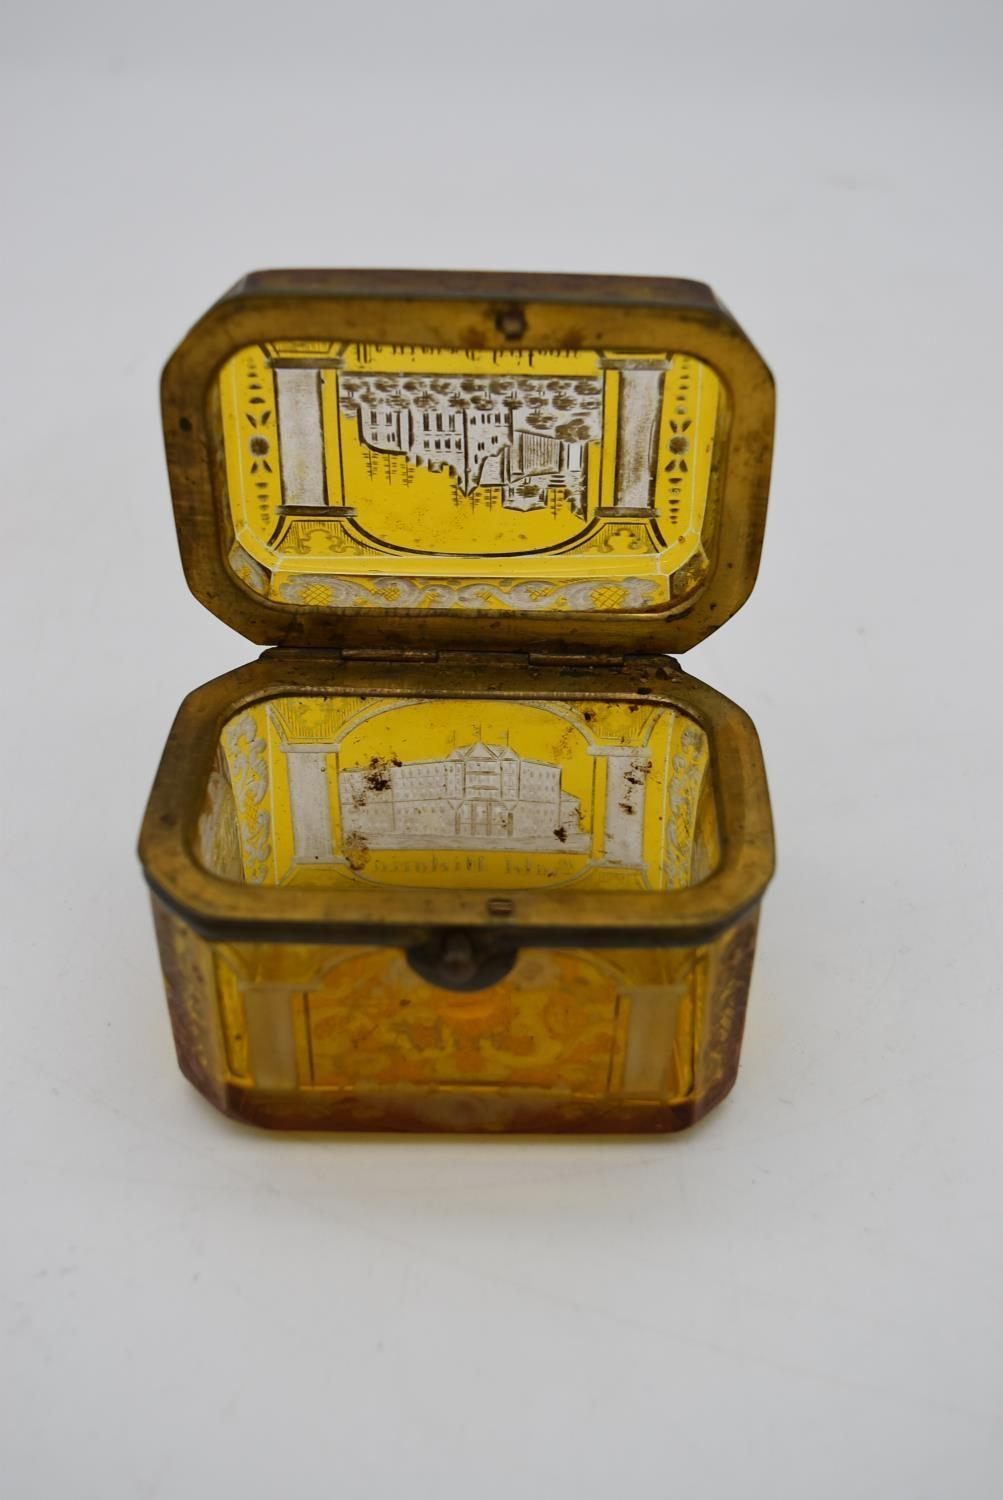 A small 19th century engraved amber glass and ormolu mounted box. H.7x8cm - Image 4 of 4